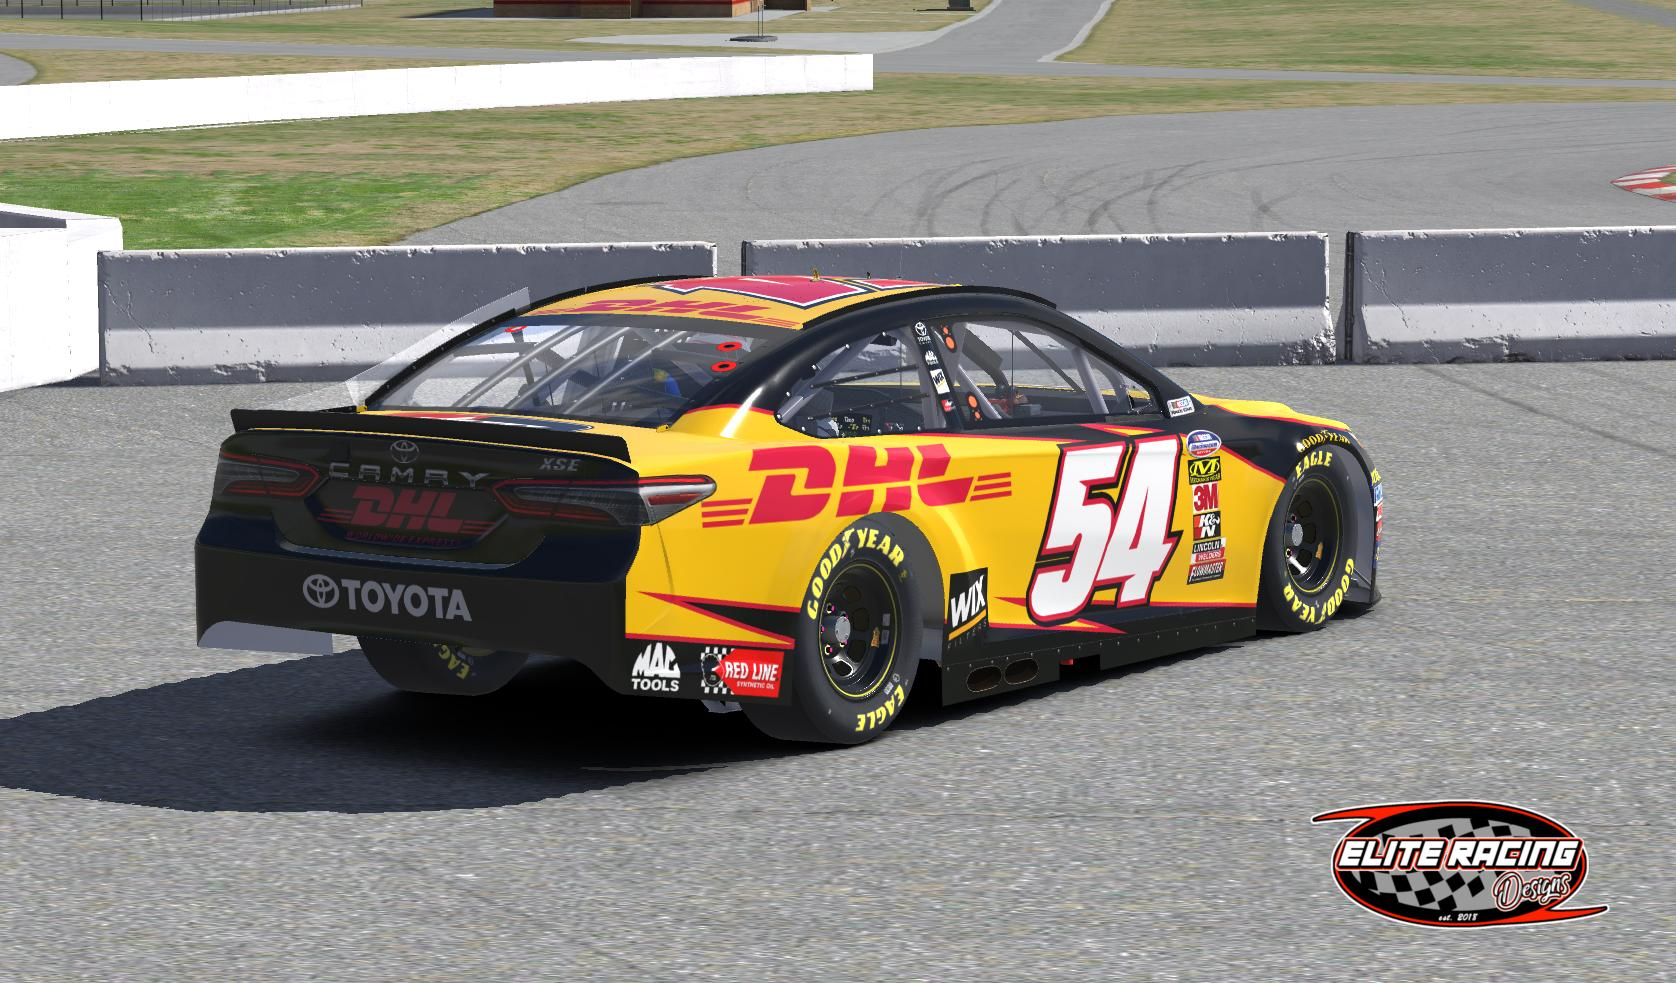 Dhl Toyota Camry Kalitta Funny Car Inspired By Erik Le Trading